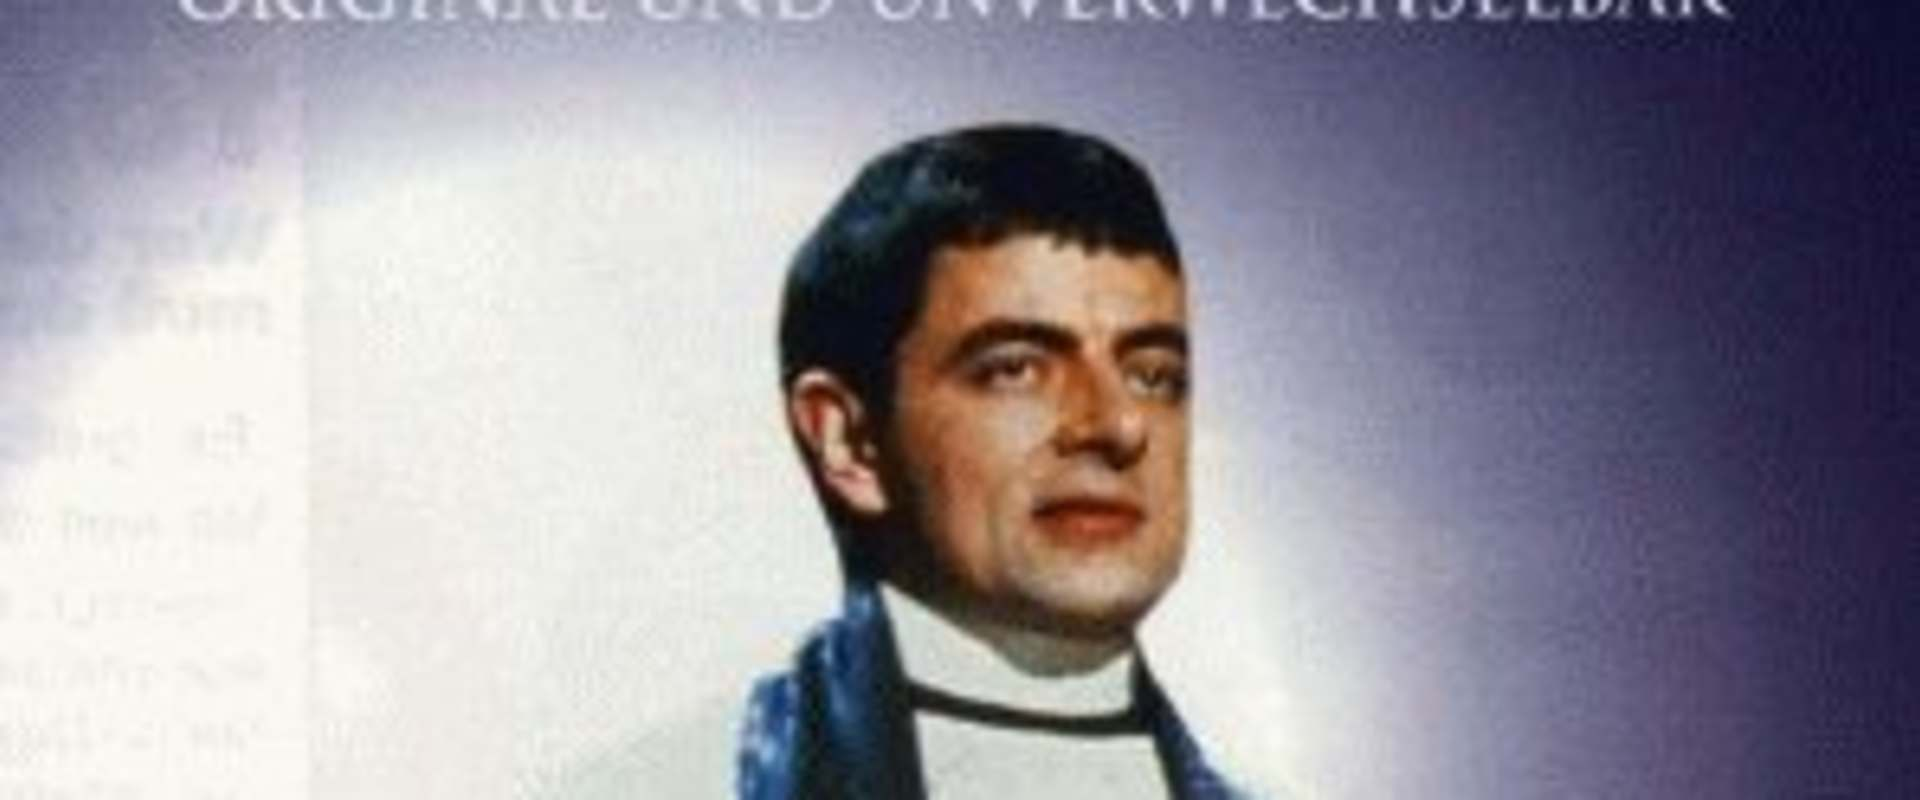 Rowan Atkinson: Not Just a Pretty Face background 2